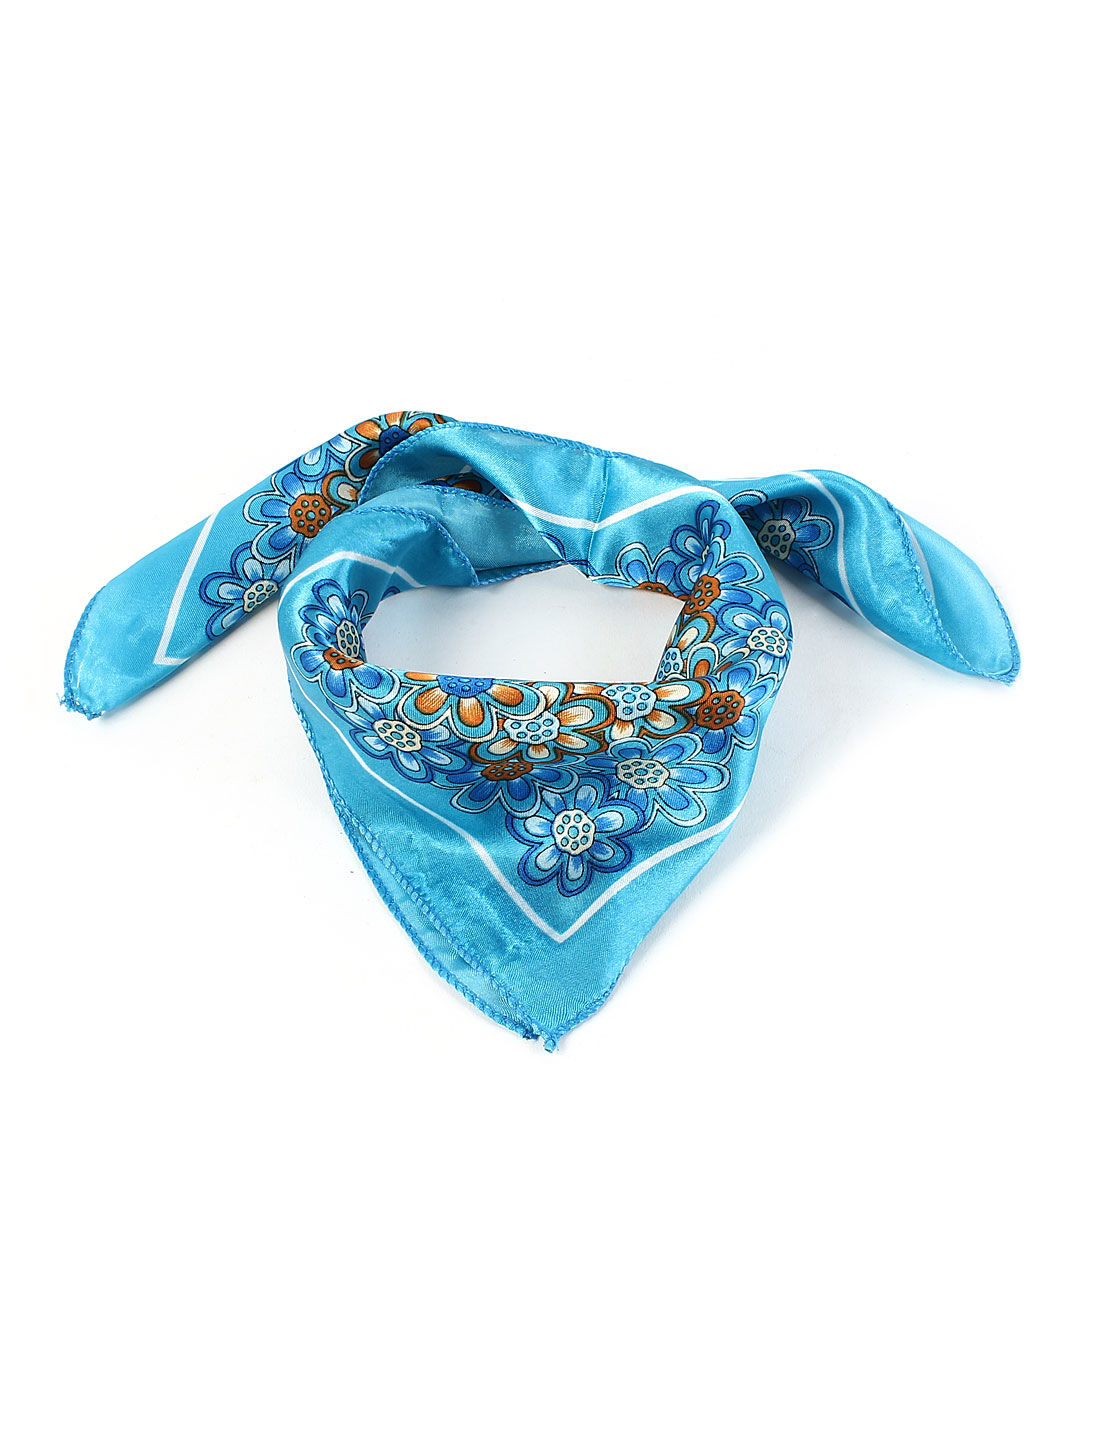 Lady Blue White Flower Print Kerchief Neck Scarf Neckerchief 50cm x 50cm